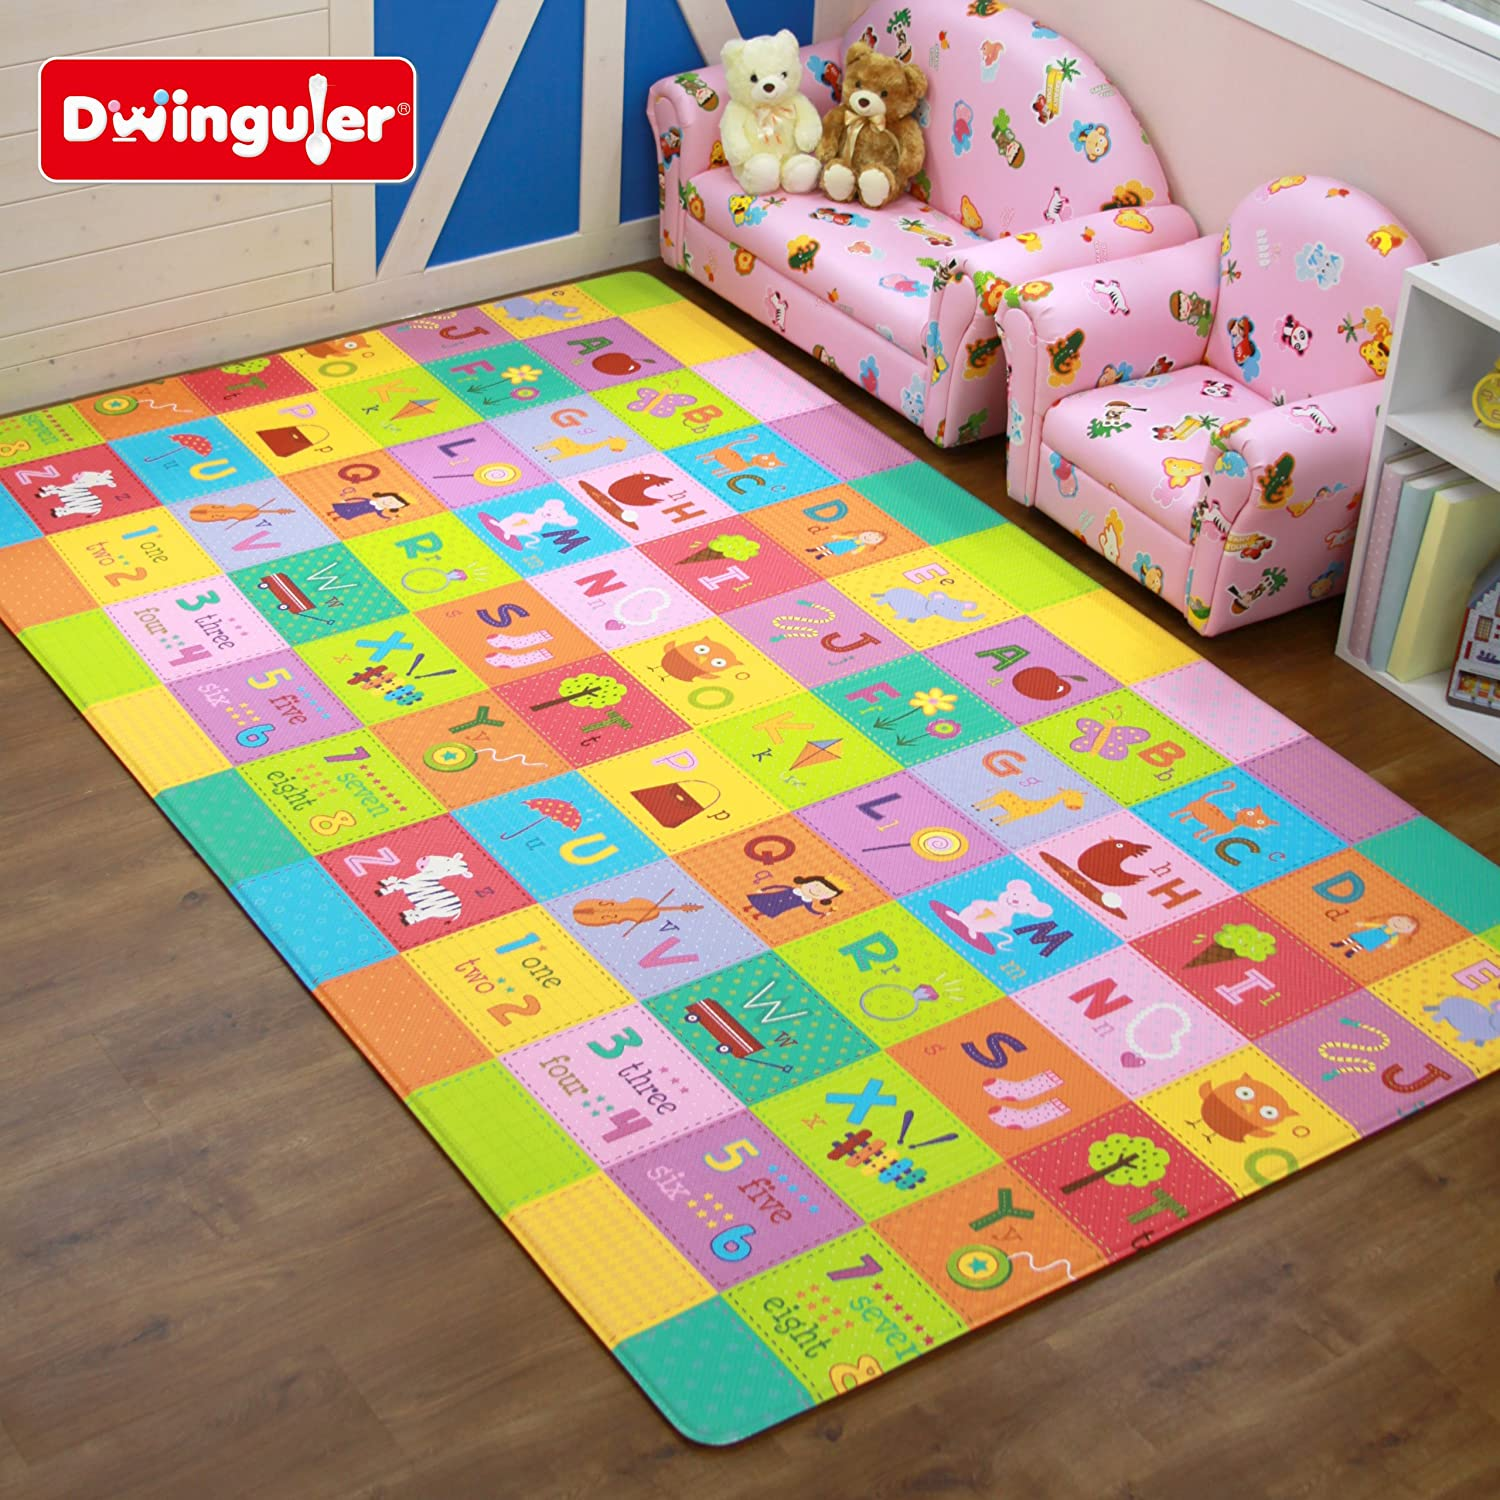 Amazon Dwinguler Eco friendly Kids Play Mat Flower Garden